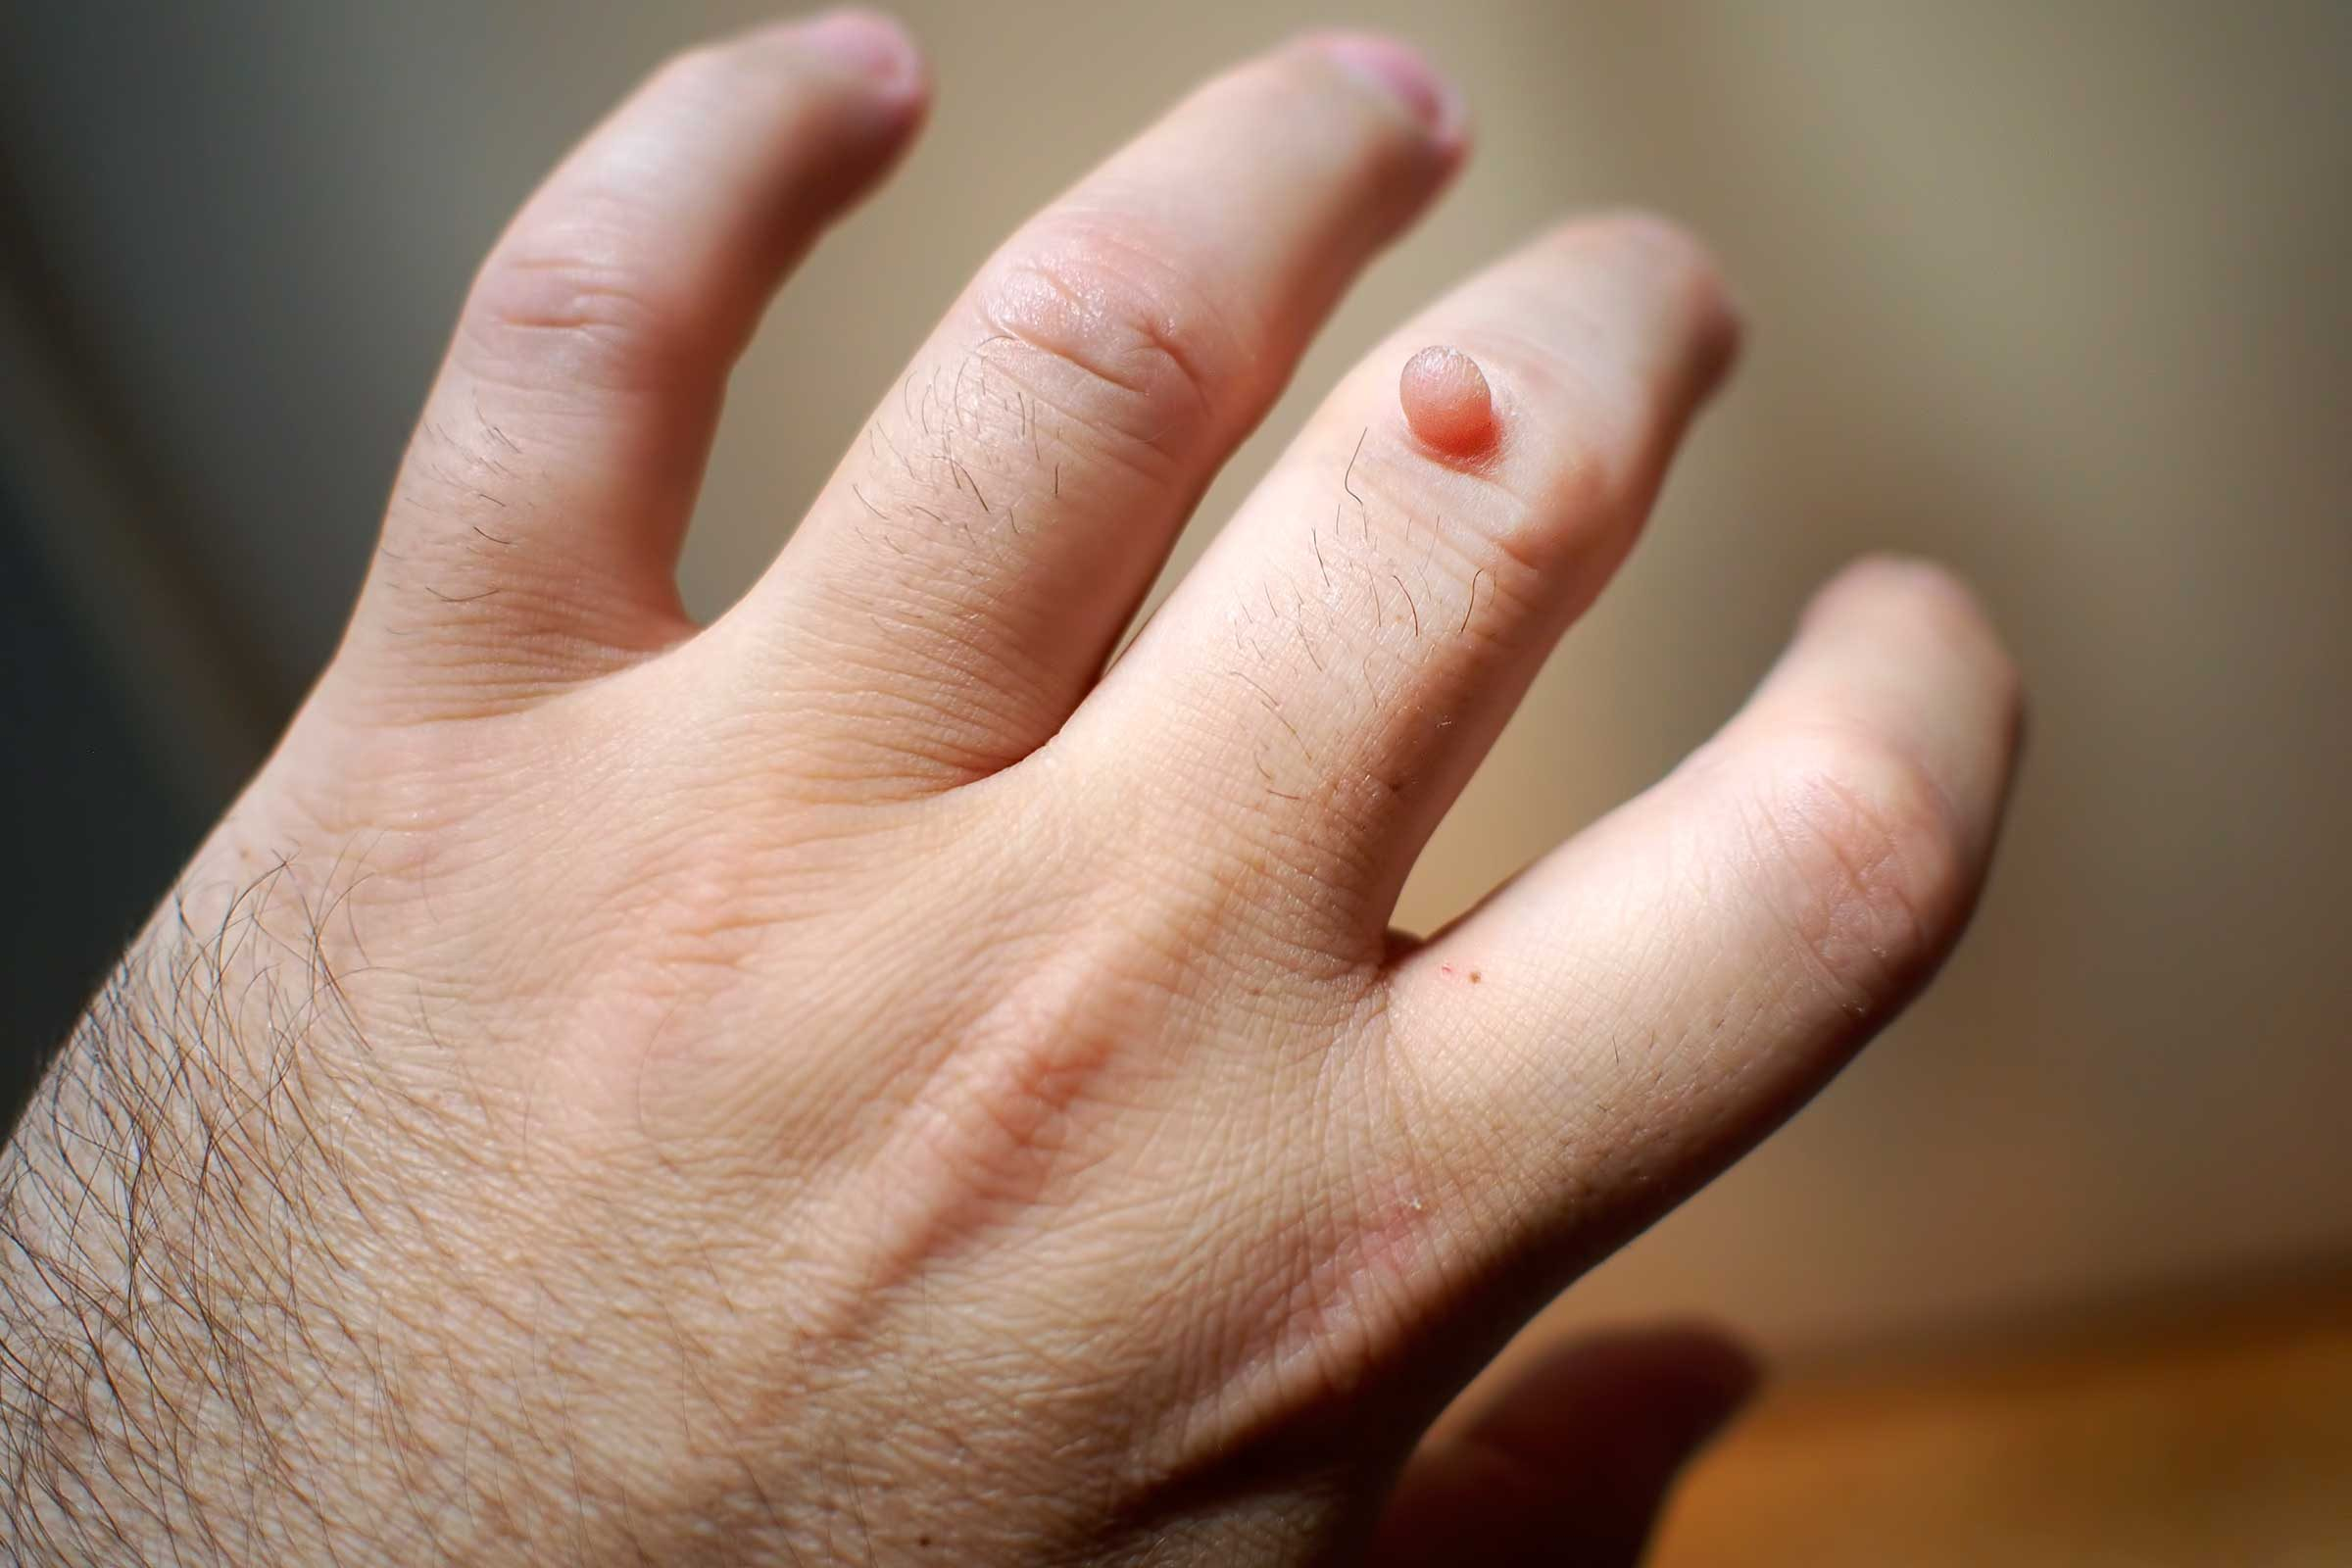 warts on hands will not go away